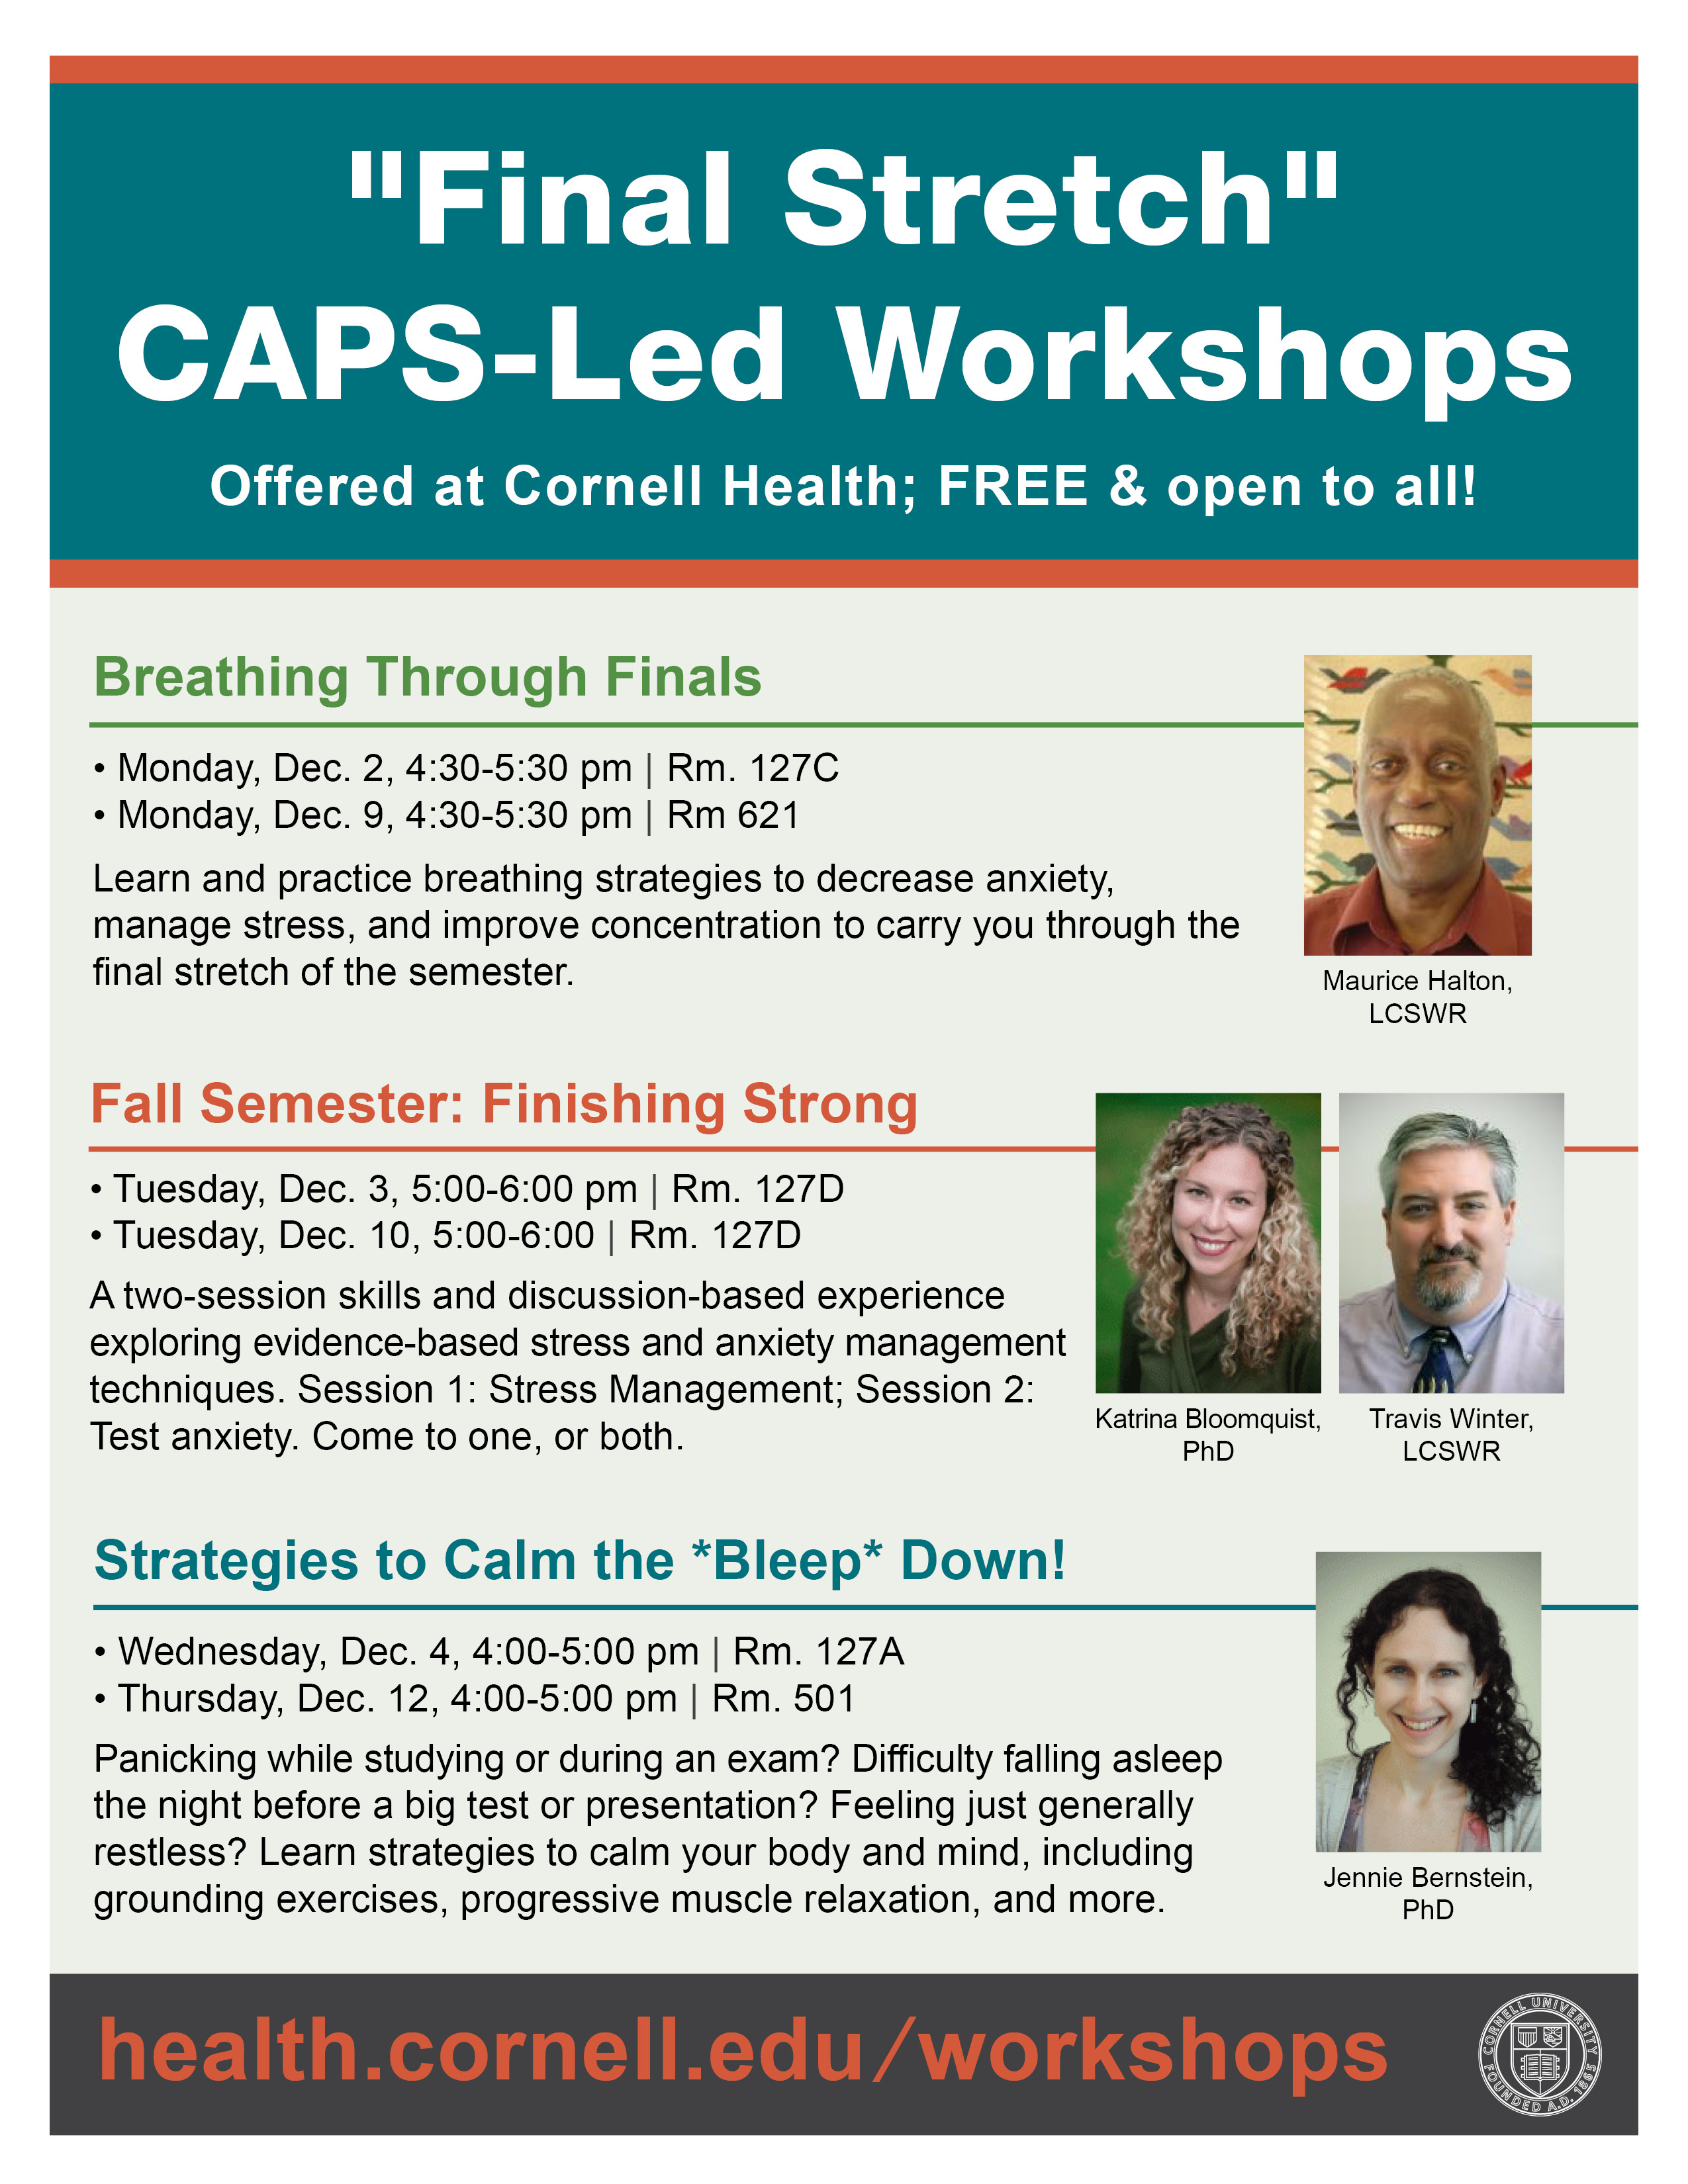 Final stretch workshops flyer